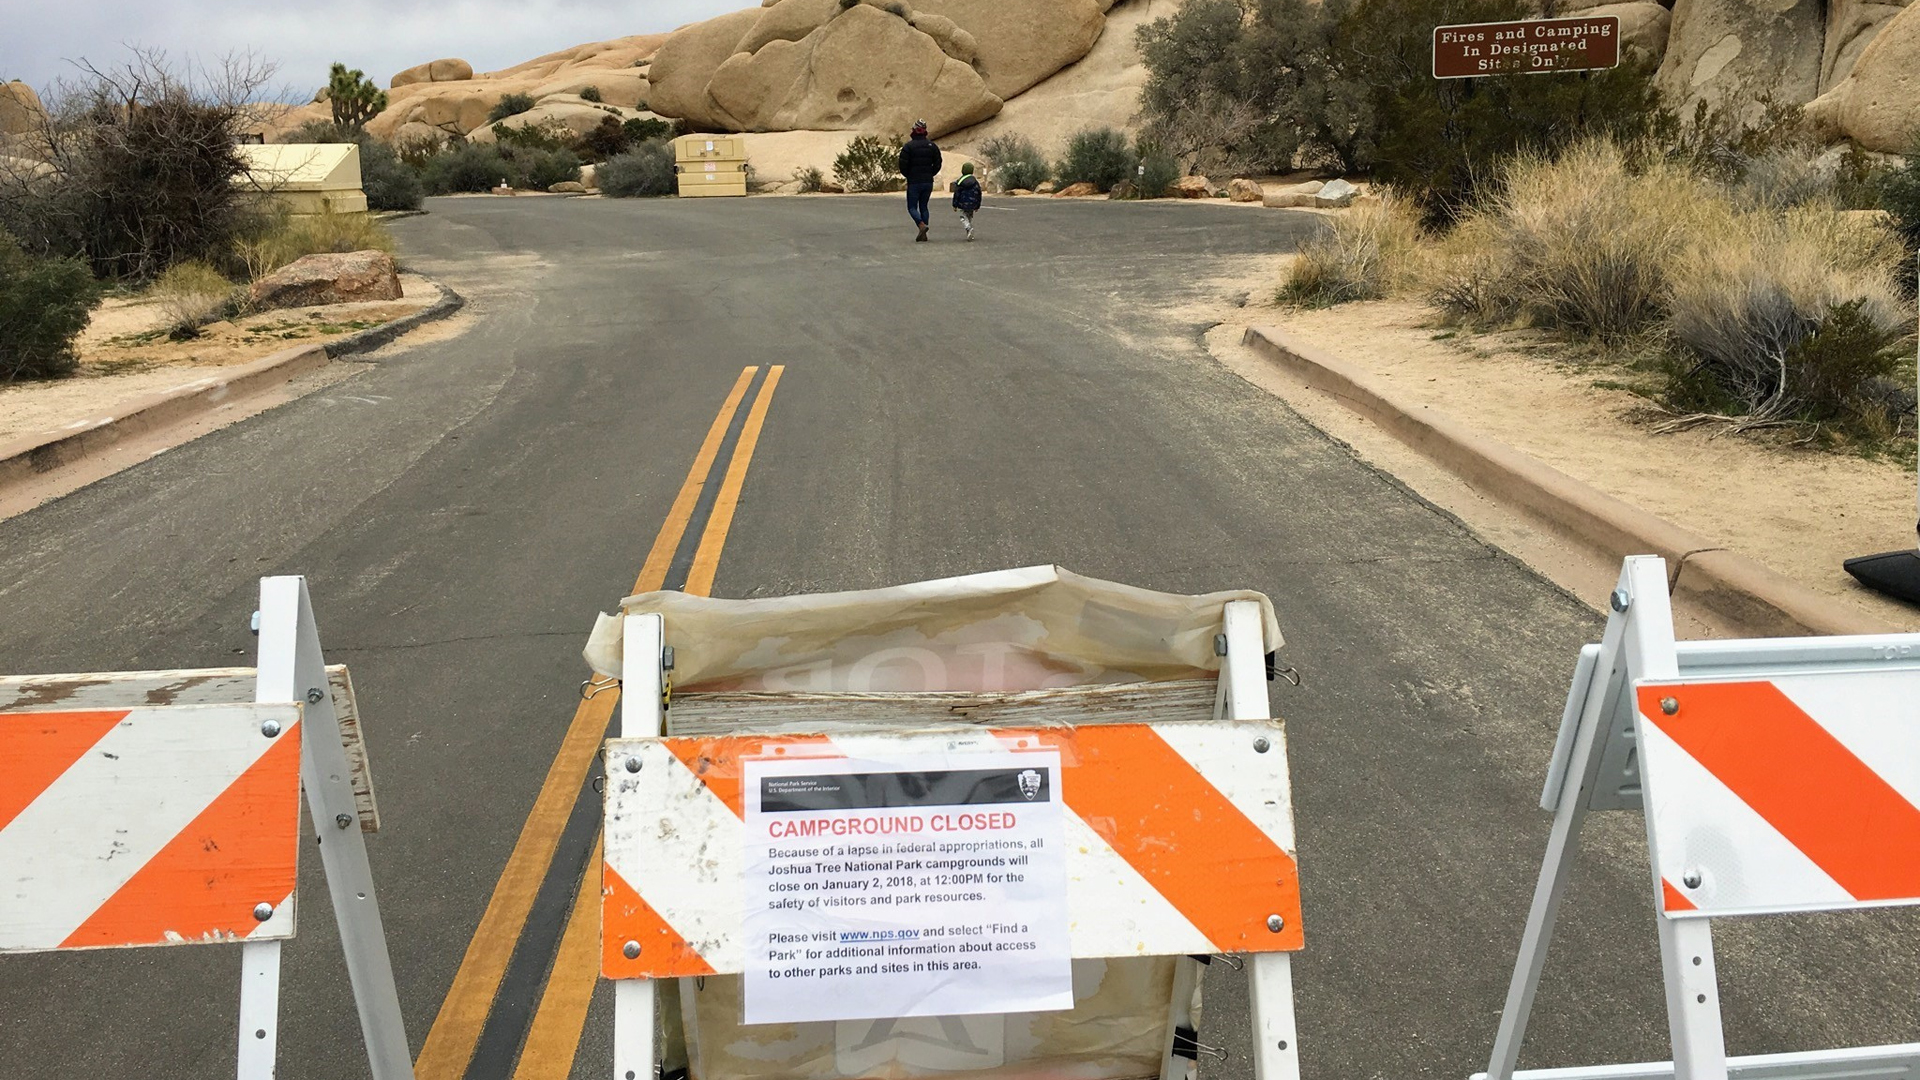 A campground closed notice at Joshua Tree National Park in California. (Credit: U.S. National Park Service)